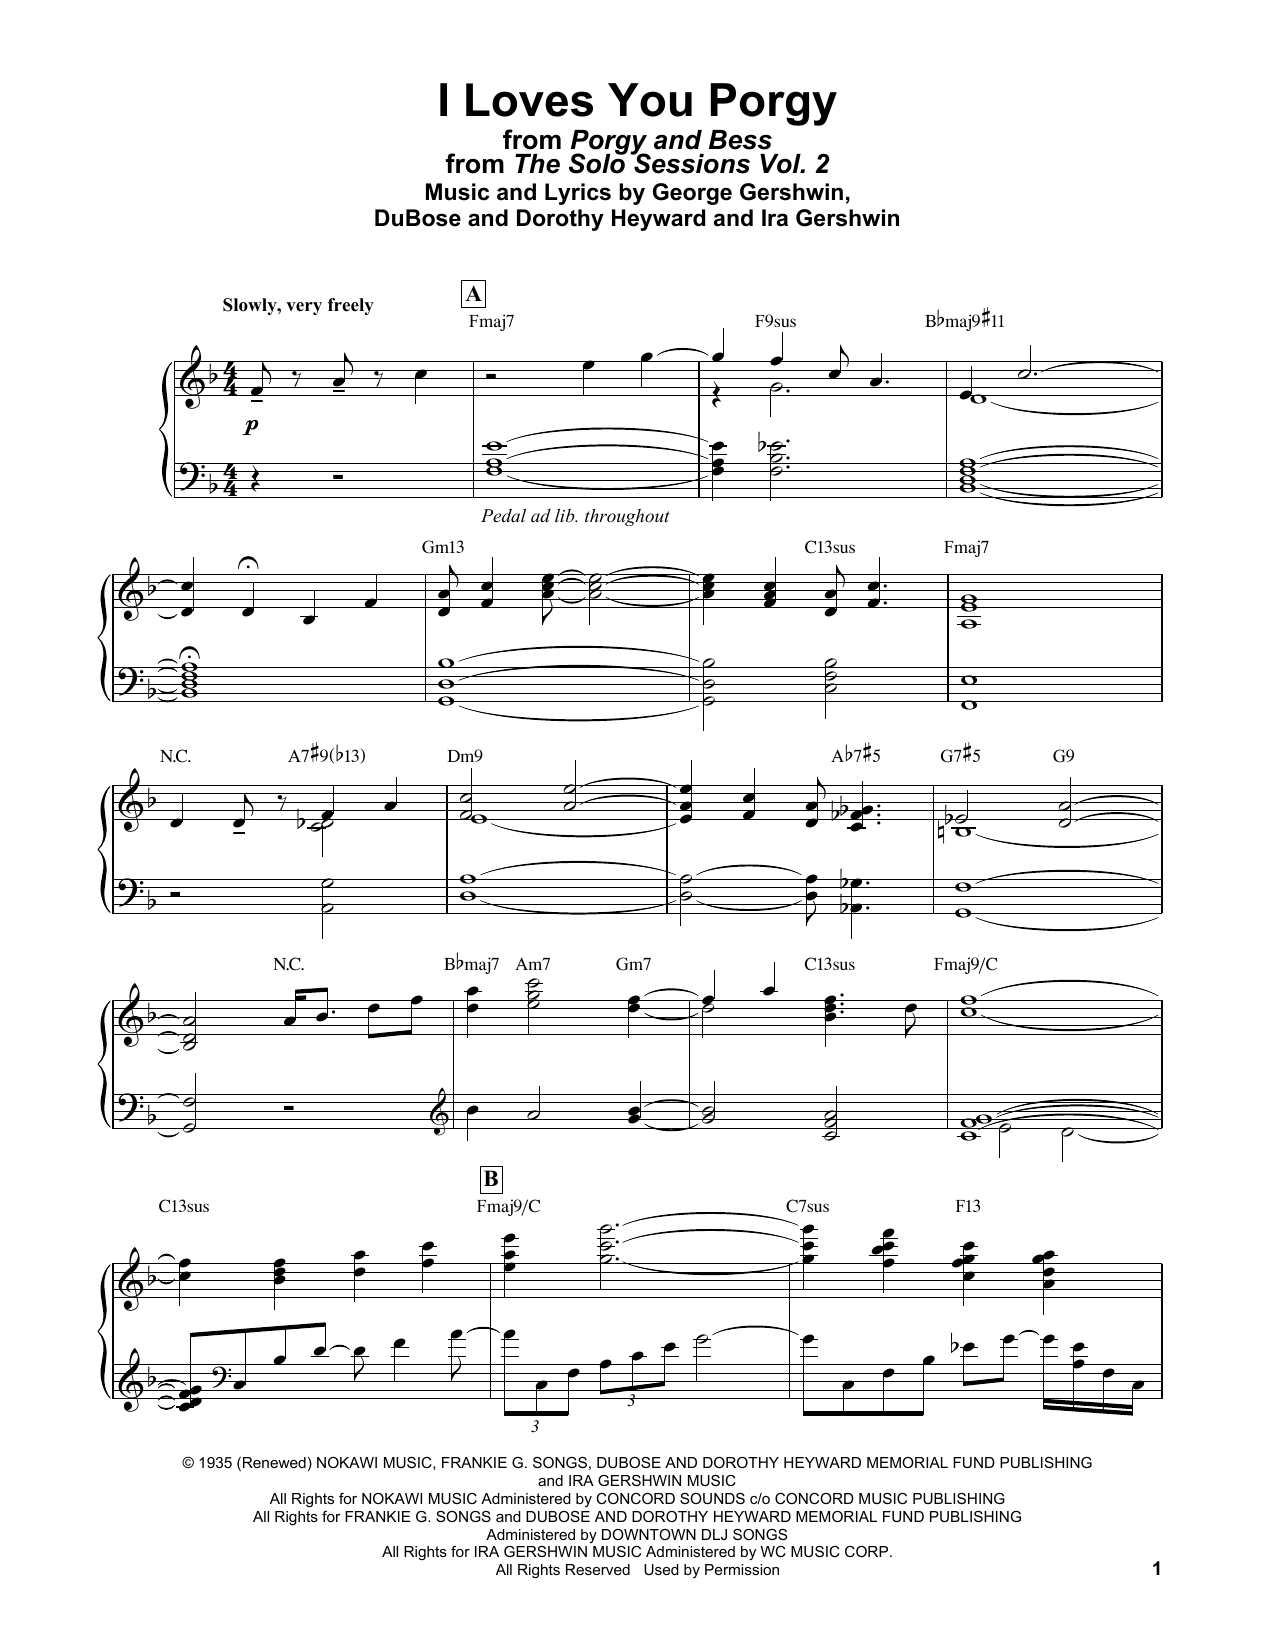 Bill Evans I Loves You, Porgy (from Porgy and Bess) sheet music notes and chords. Download Printable PDF.